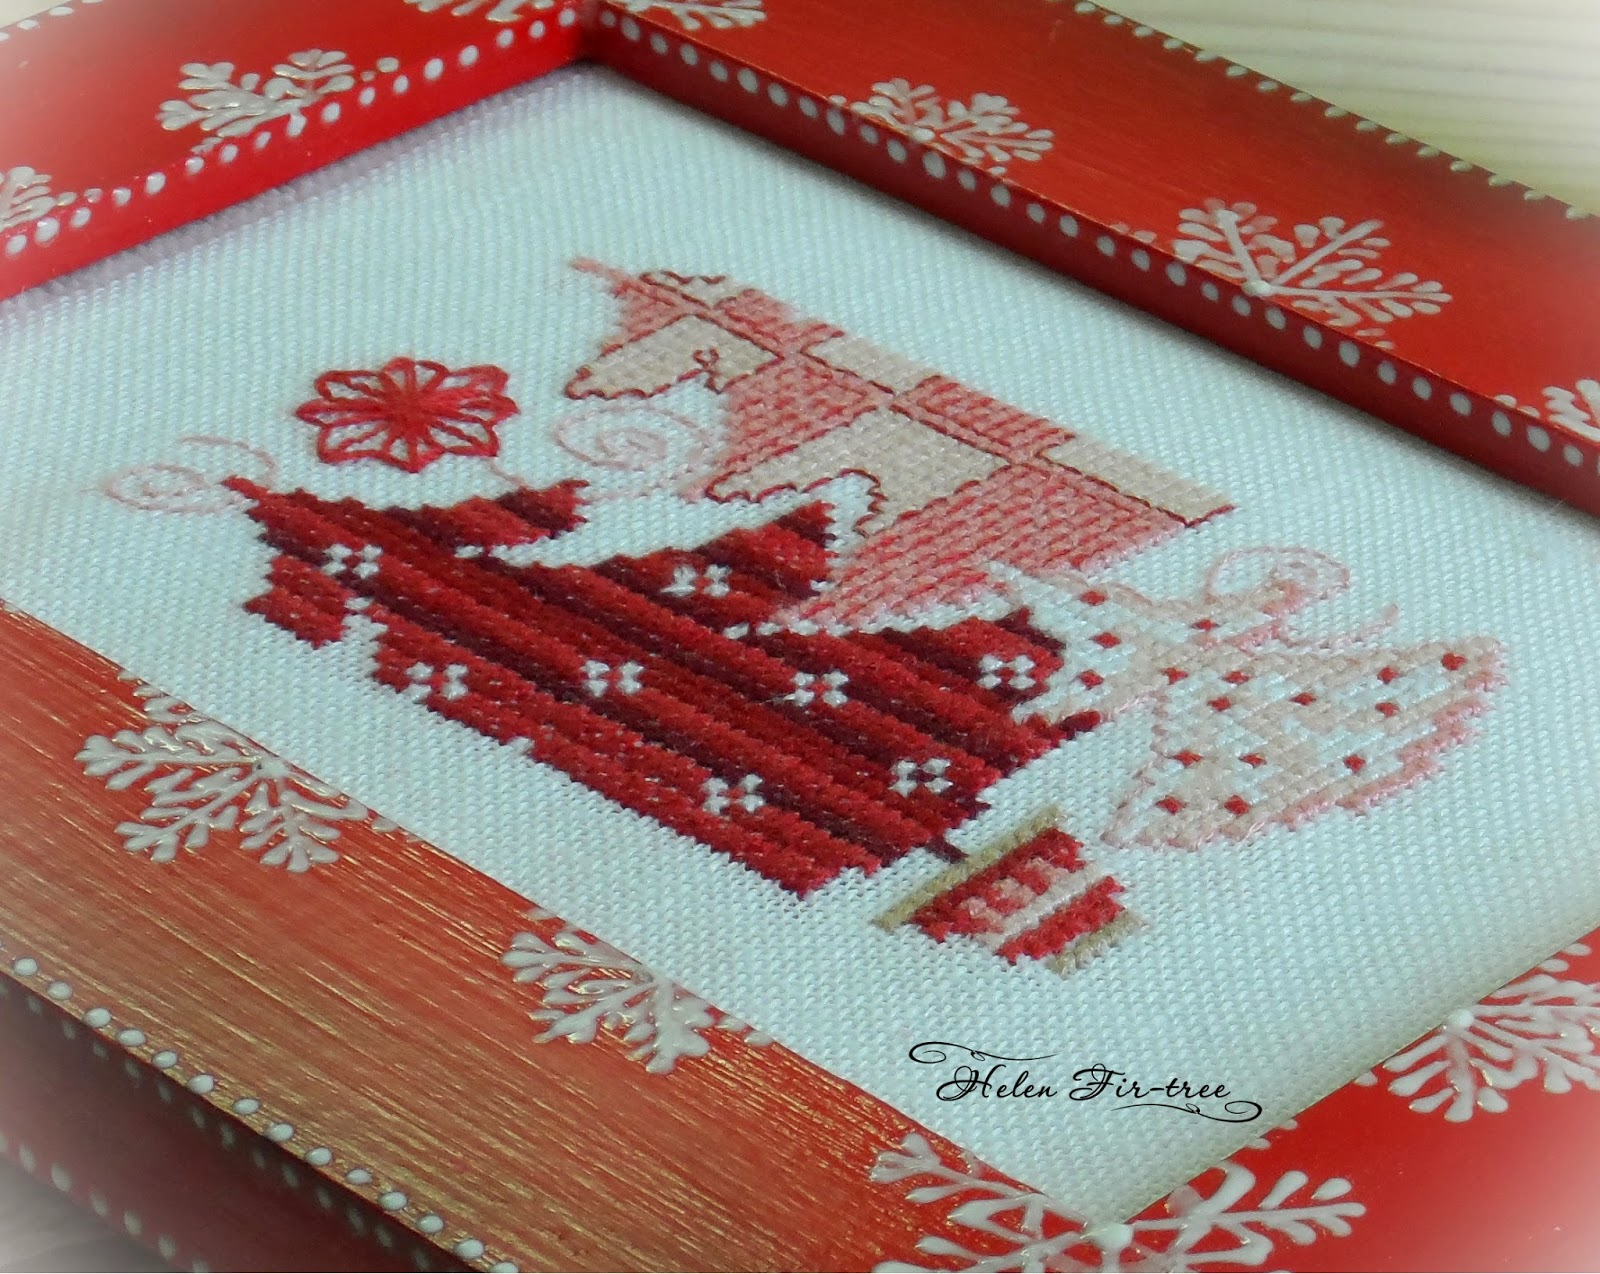 Helen Fir-tree вышивка cross-stitch Vervaco